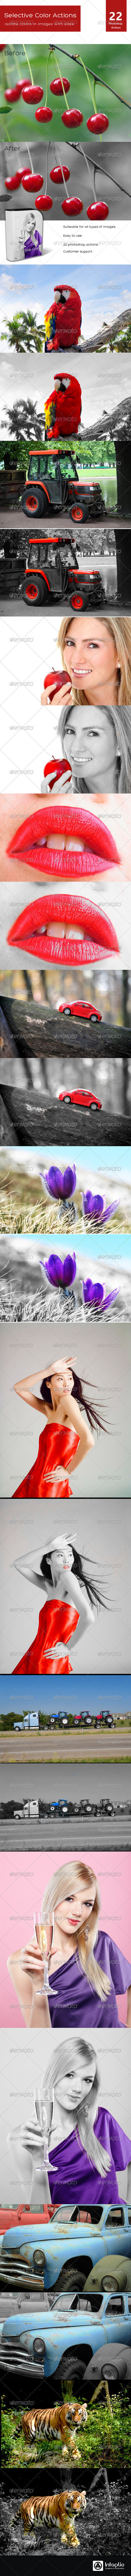 GraphicRiver Selective Color Actions 247627